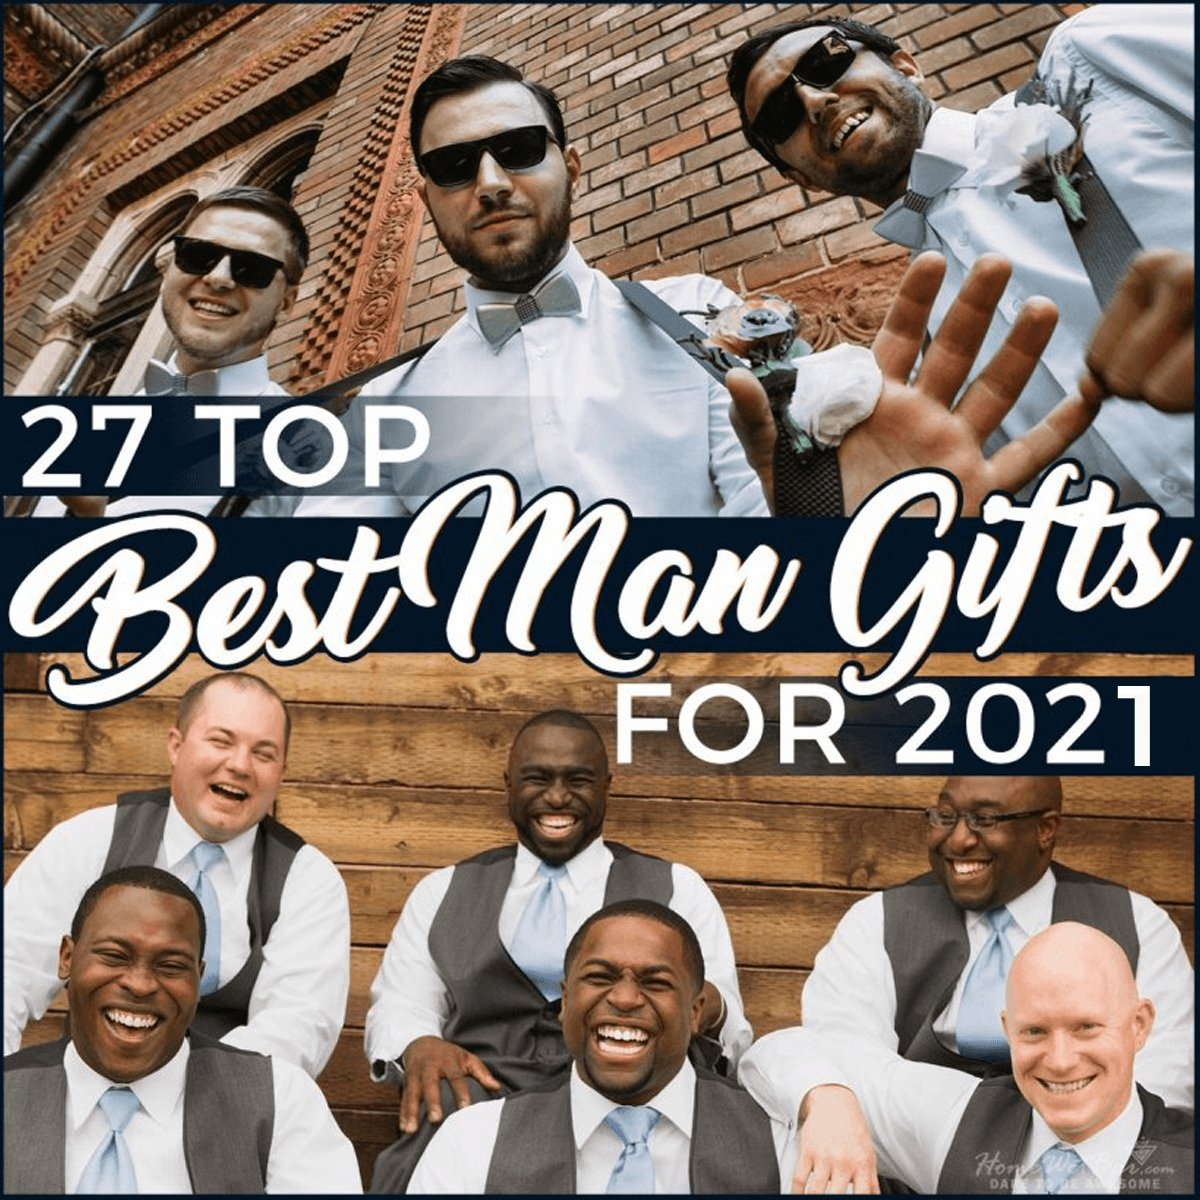 27 Top Best Man Gifts for 2021